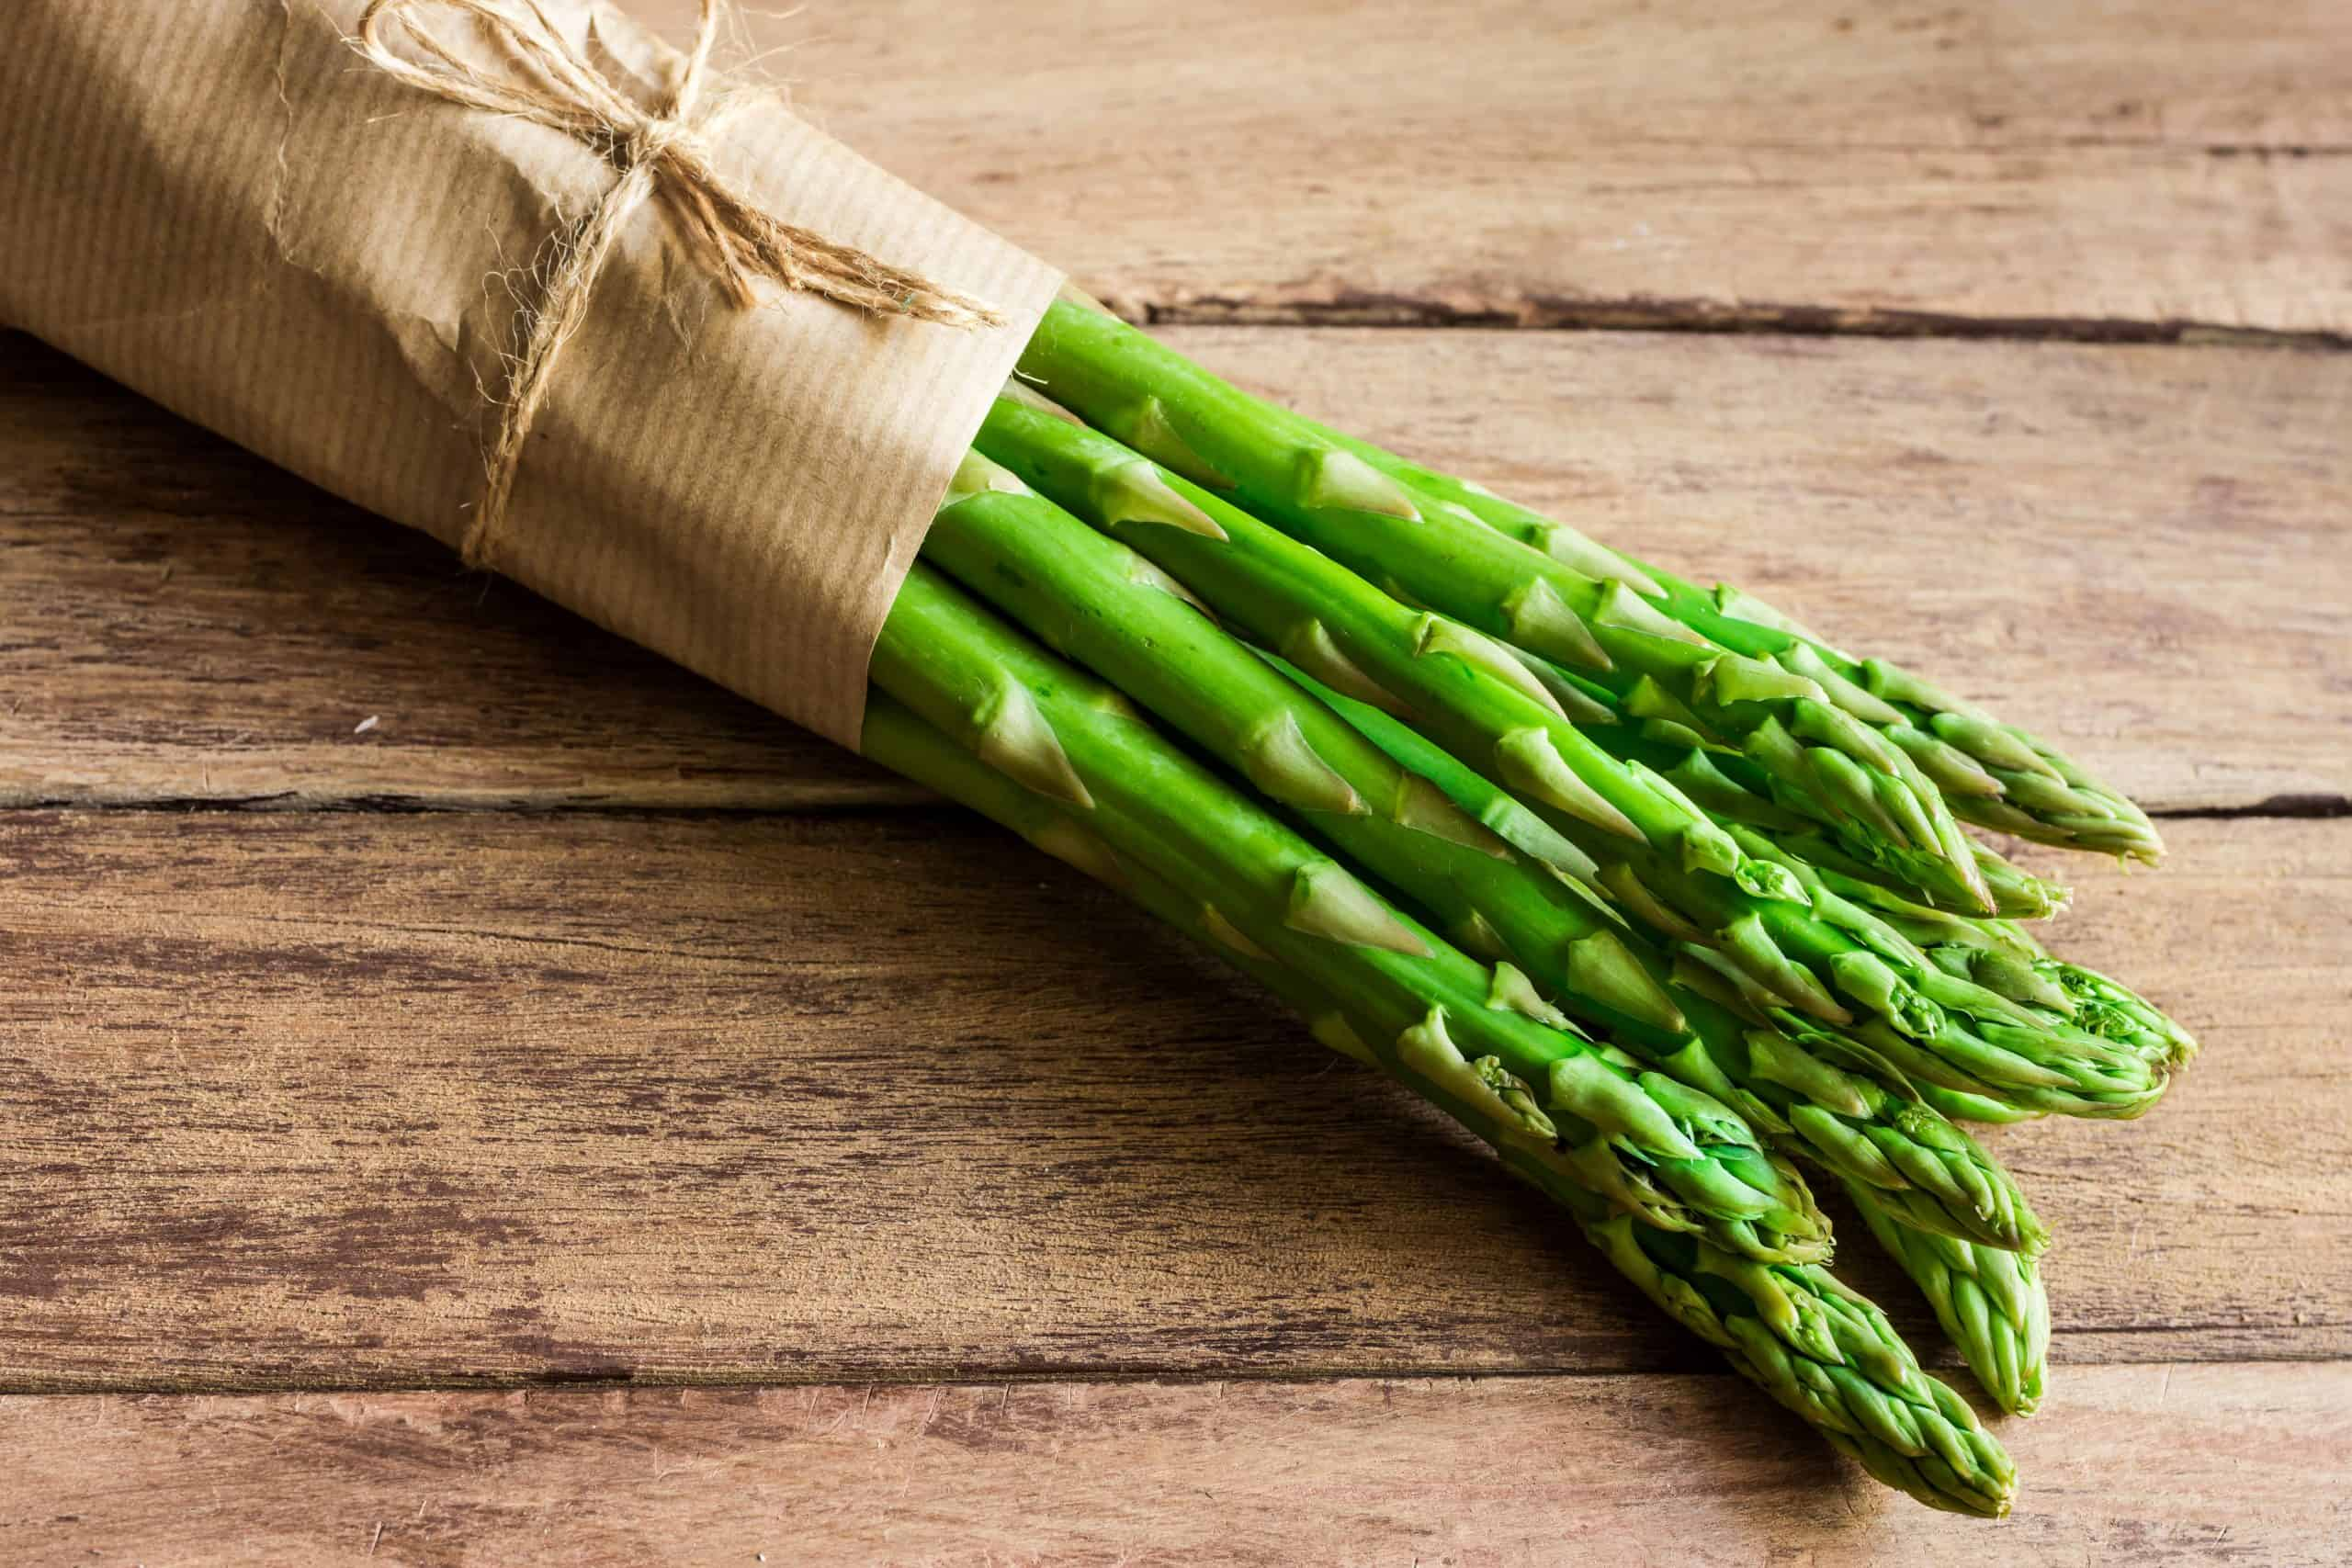 Bunch of green fresh asparagus tied with twine lying on aged plank wood table, menu template, top view, copy space for text